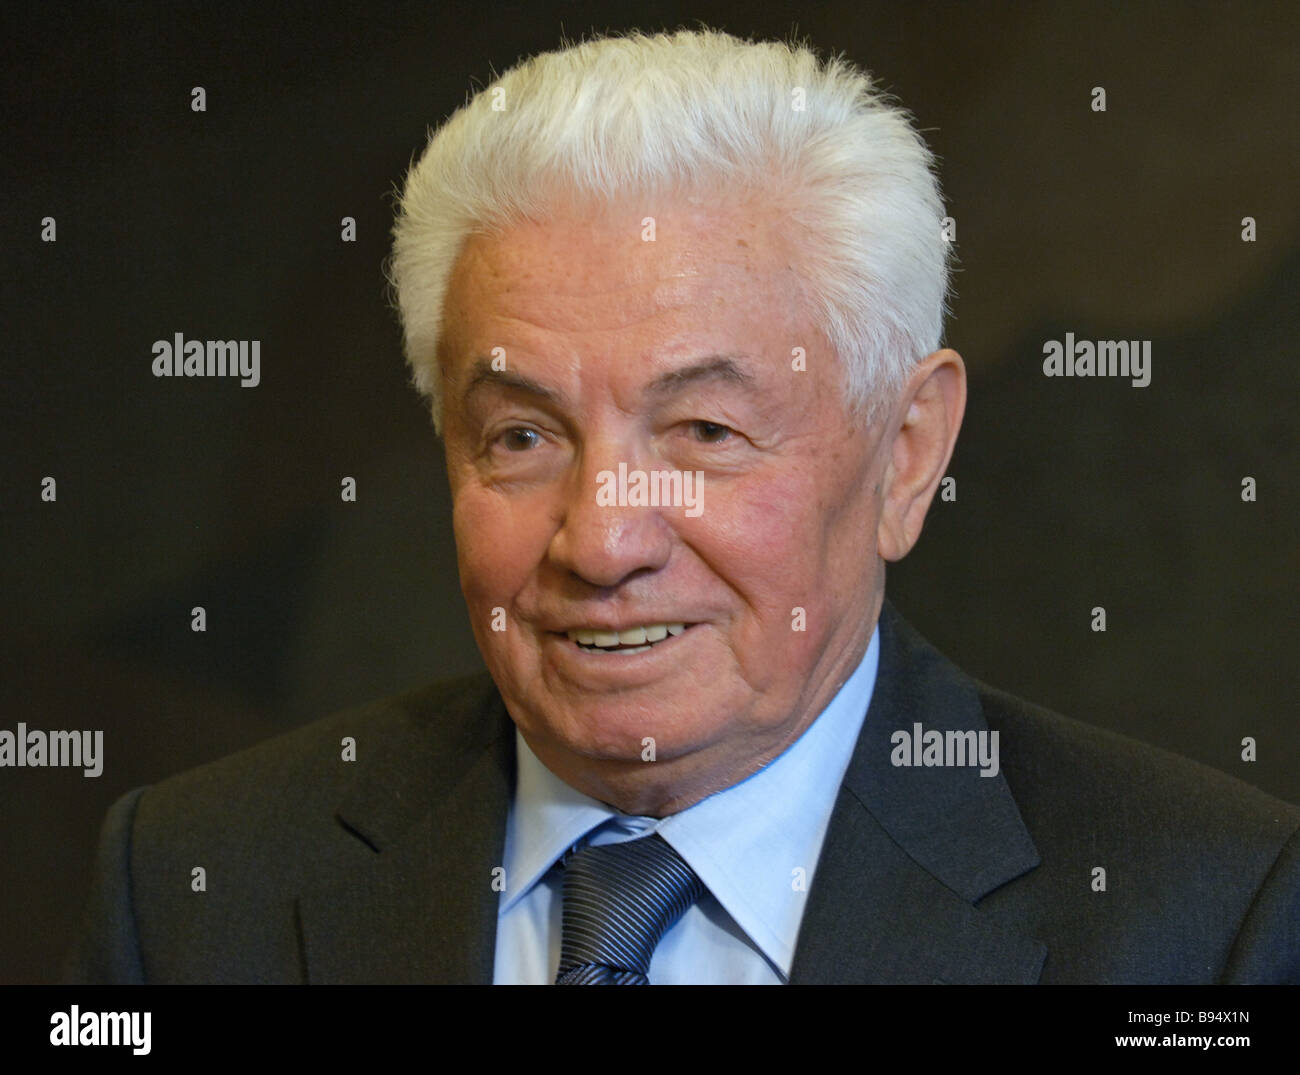 Writer Vladimir Voinovich celebrates his 75th birthday with a reading at the concert hall of the Kosmos hotel - Stock Image